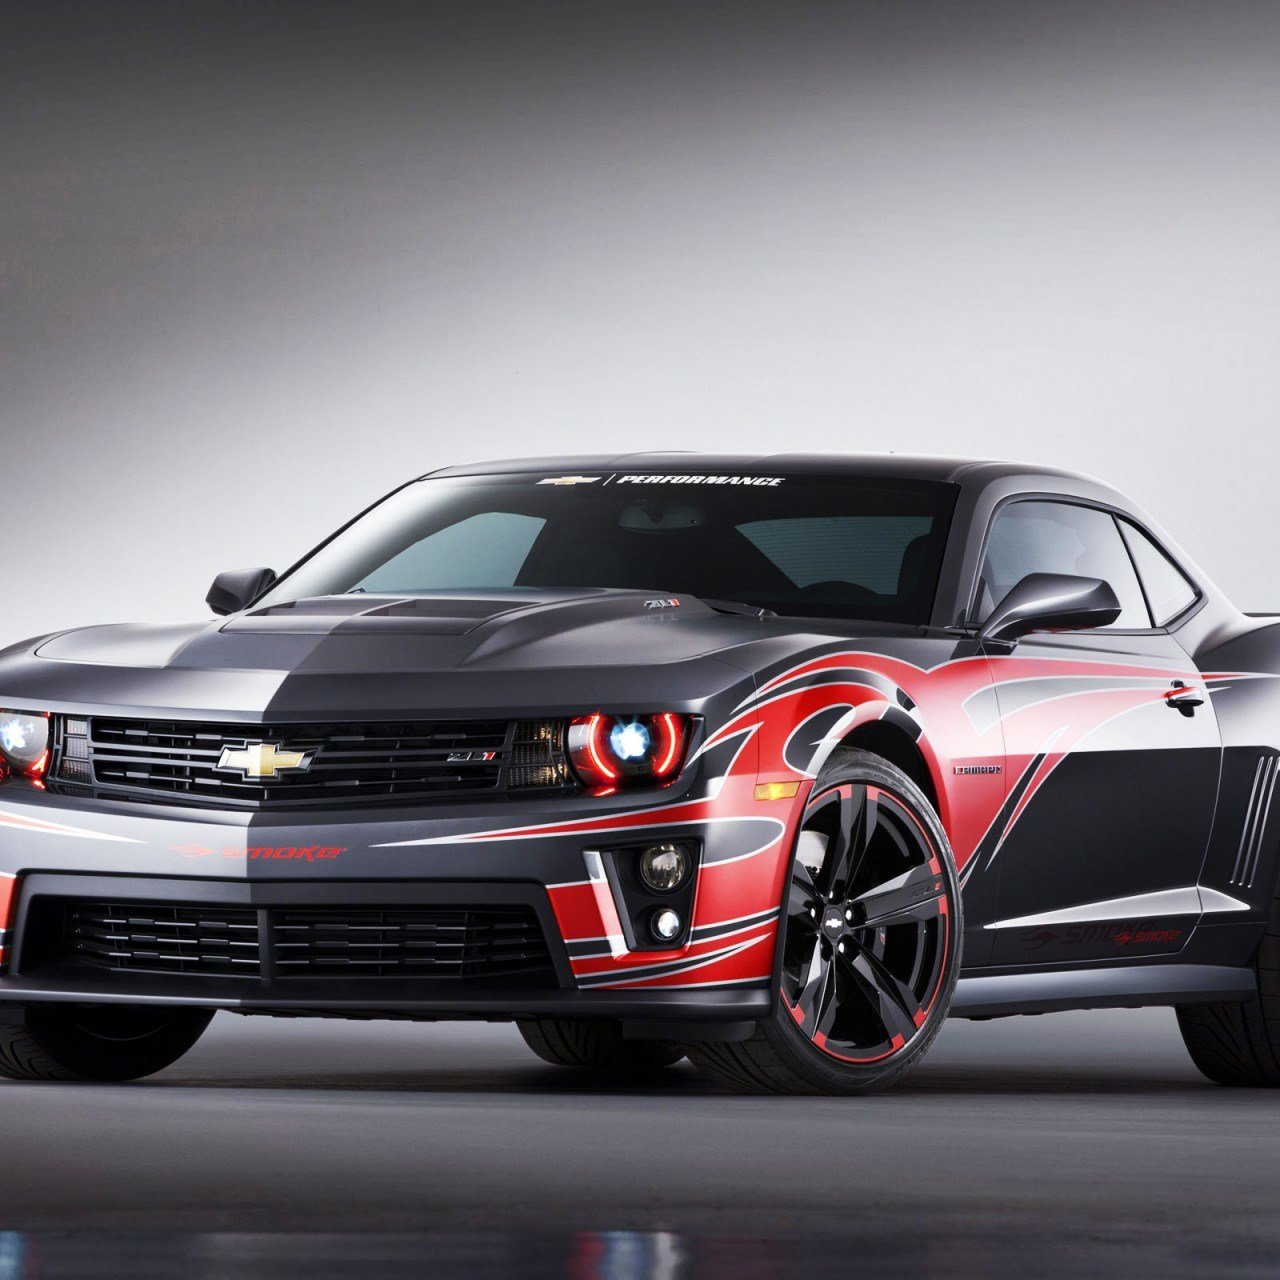 Latest Chevy Muscle Car Wallpaper Wallpapersafari Free Download